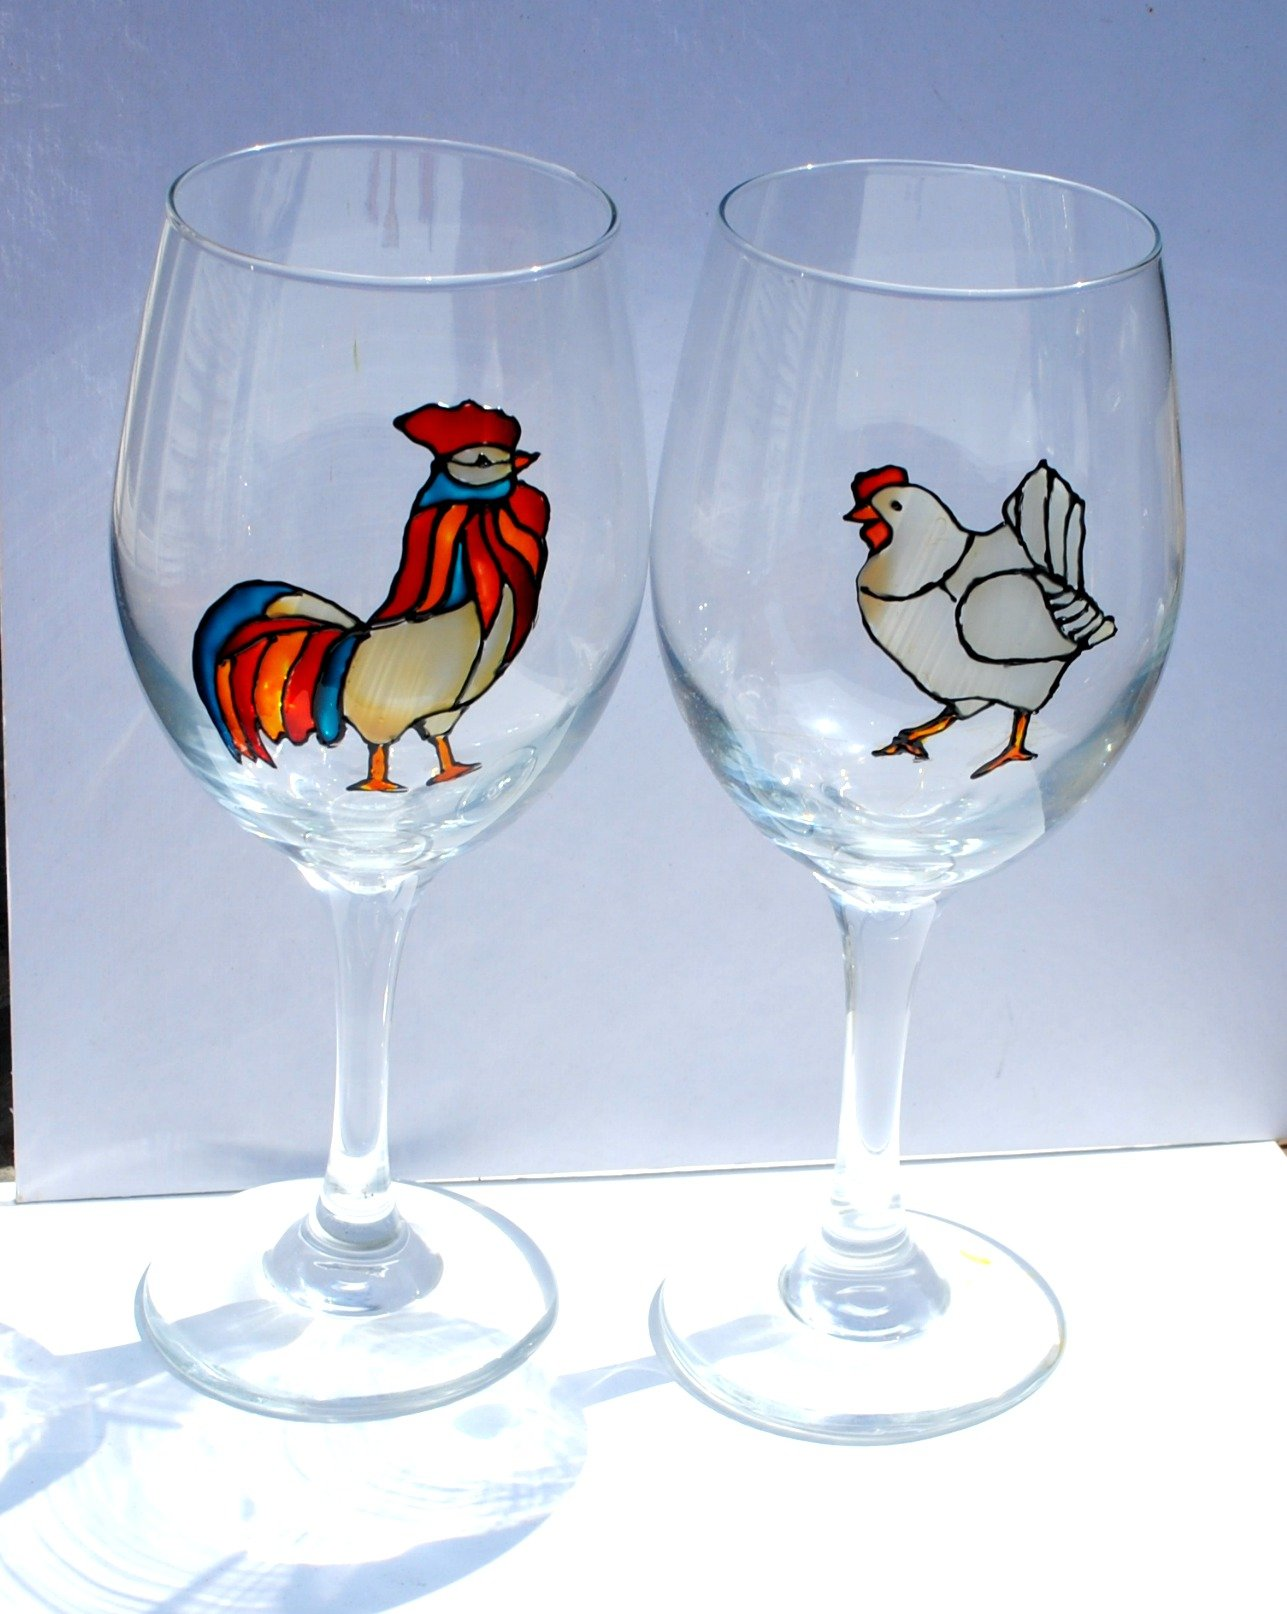 Rooster and Hen Hand Painted Stemmed 20 oz Wine Glasses (Set of 2), Chicken Kitchen Decor.